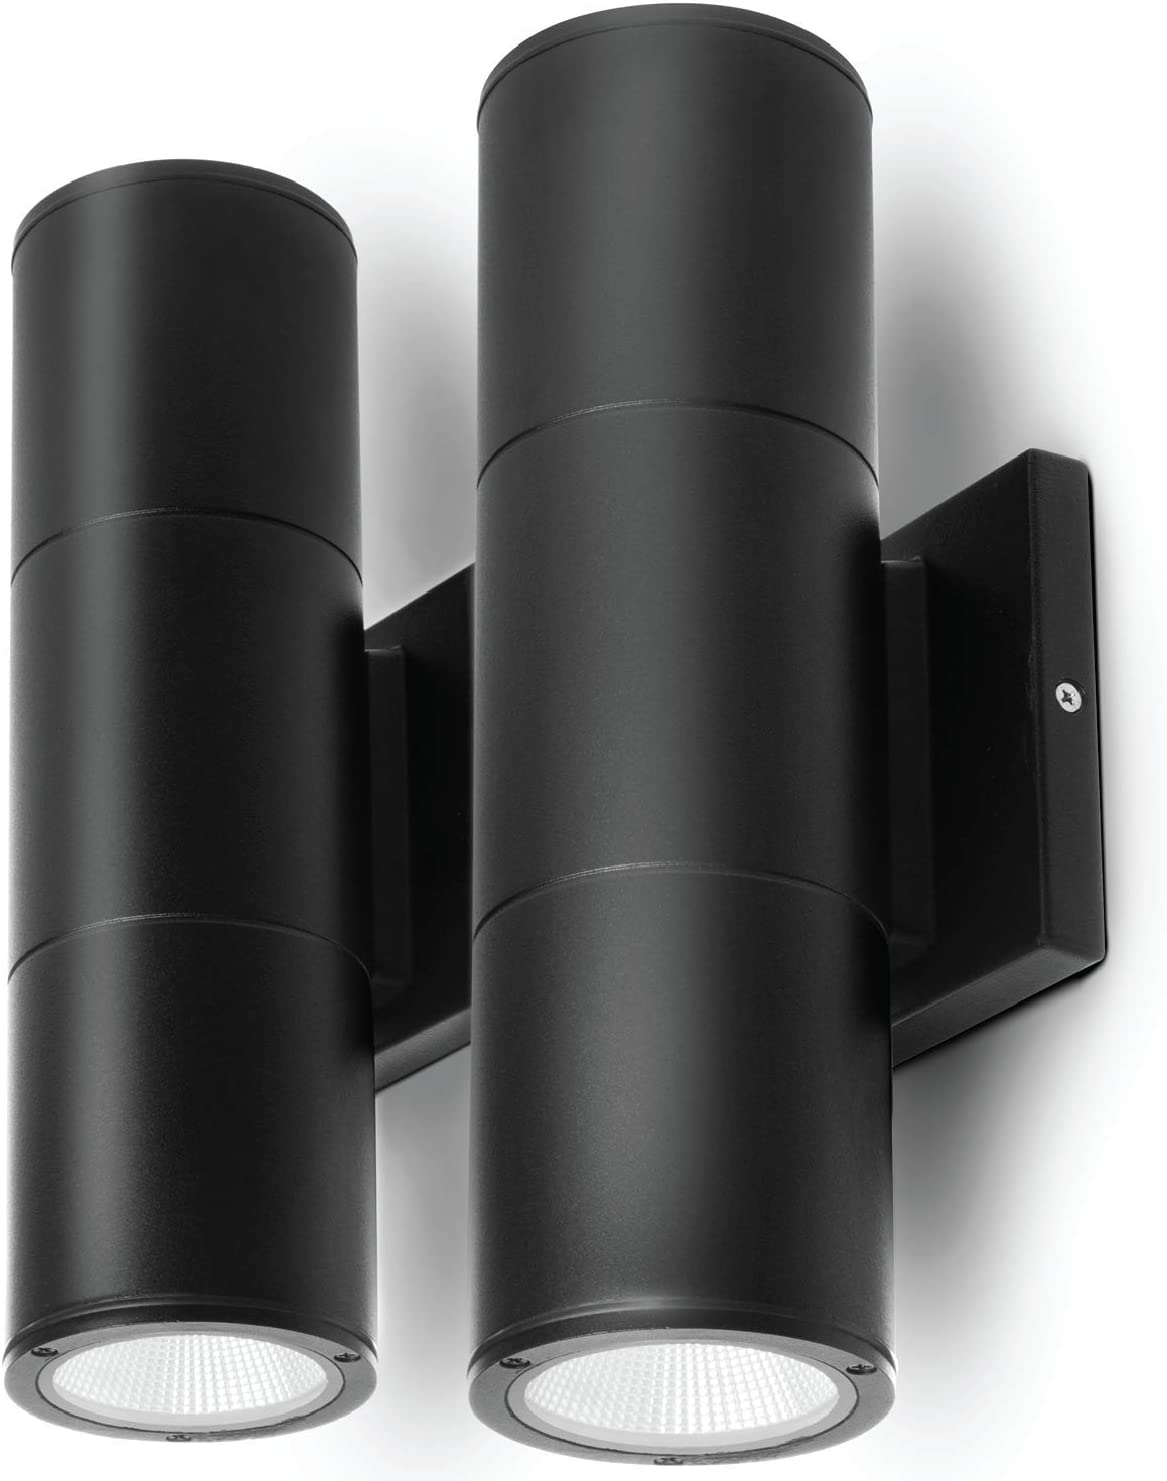 Home Zone Security Porch Sconce Light - Outdoor LED Modern Up Down Wall Mount Lighting, Black (2-Pack)